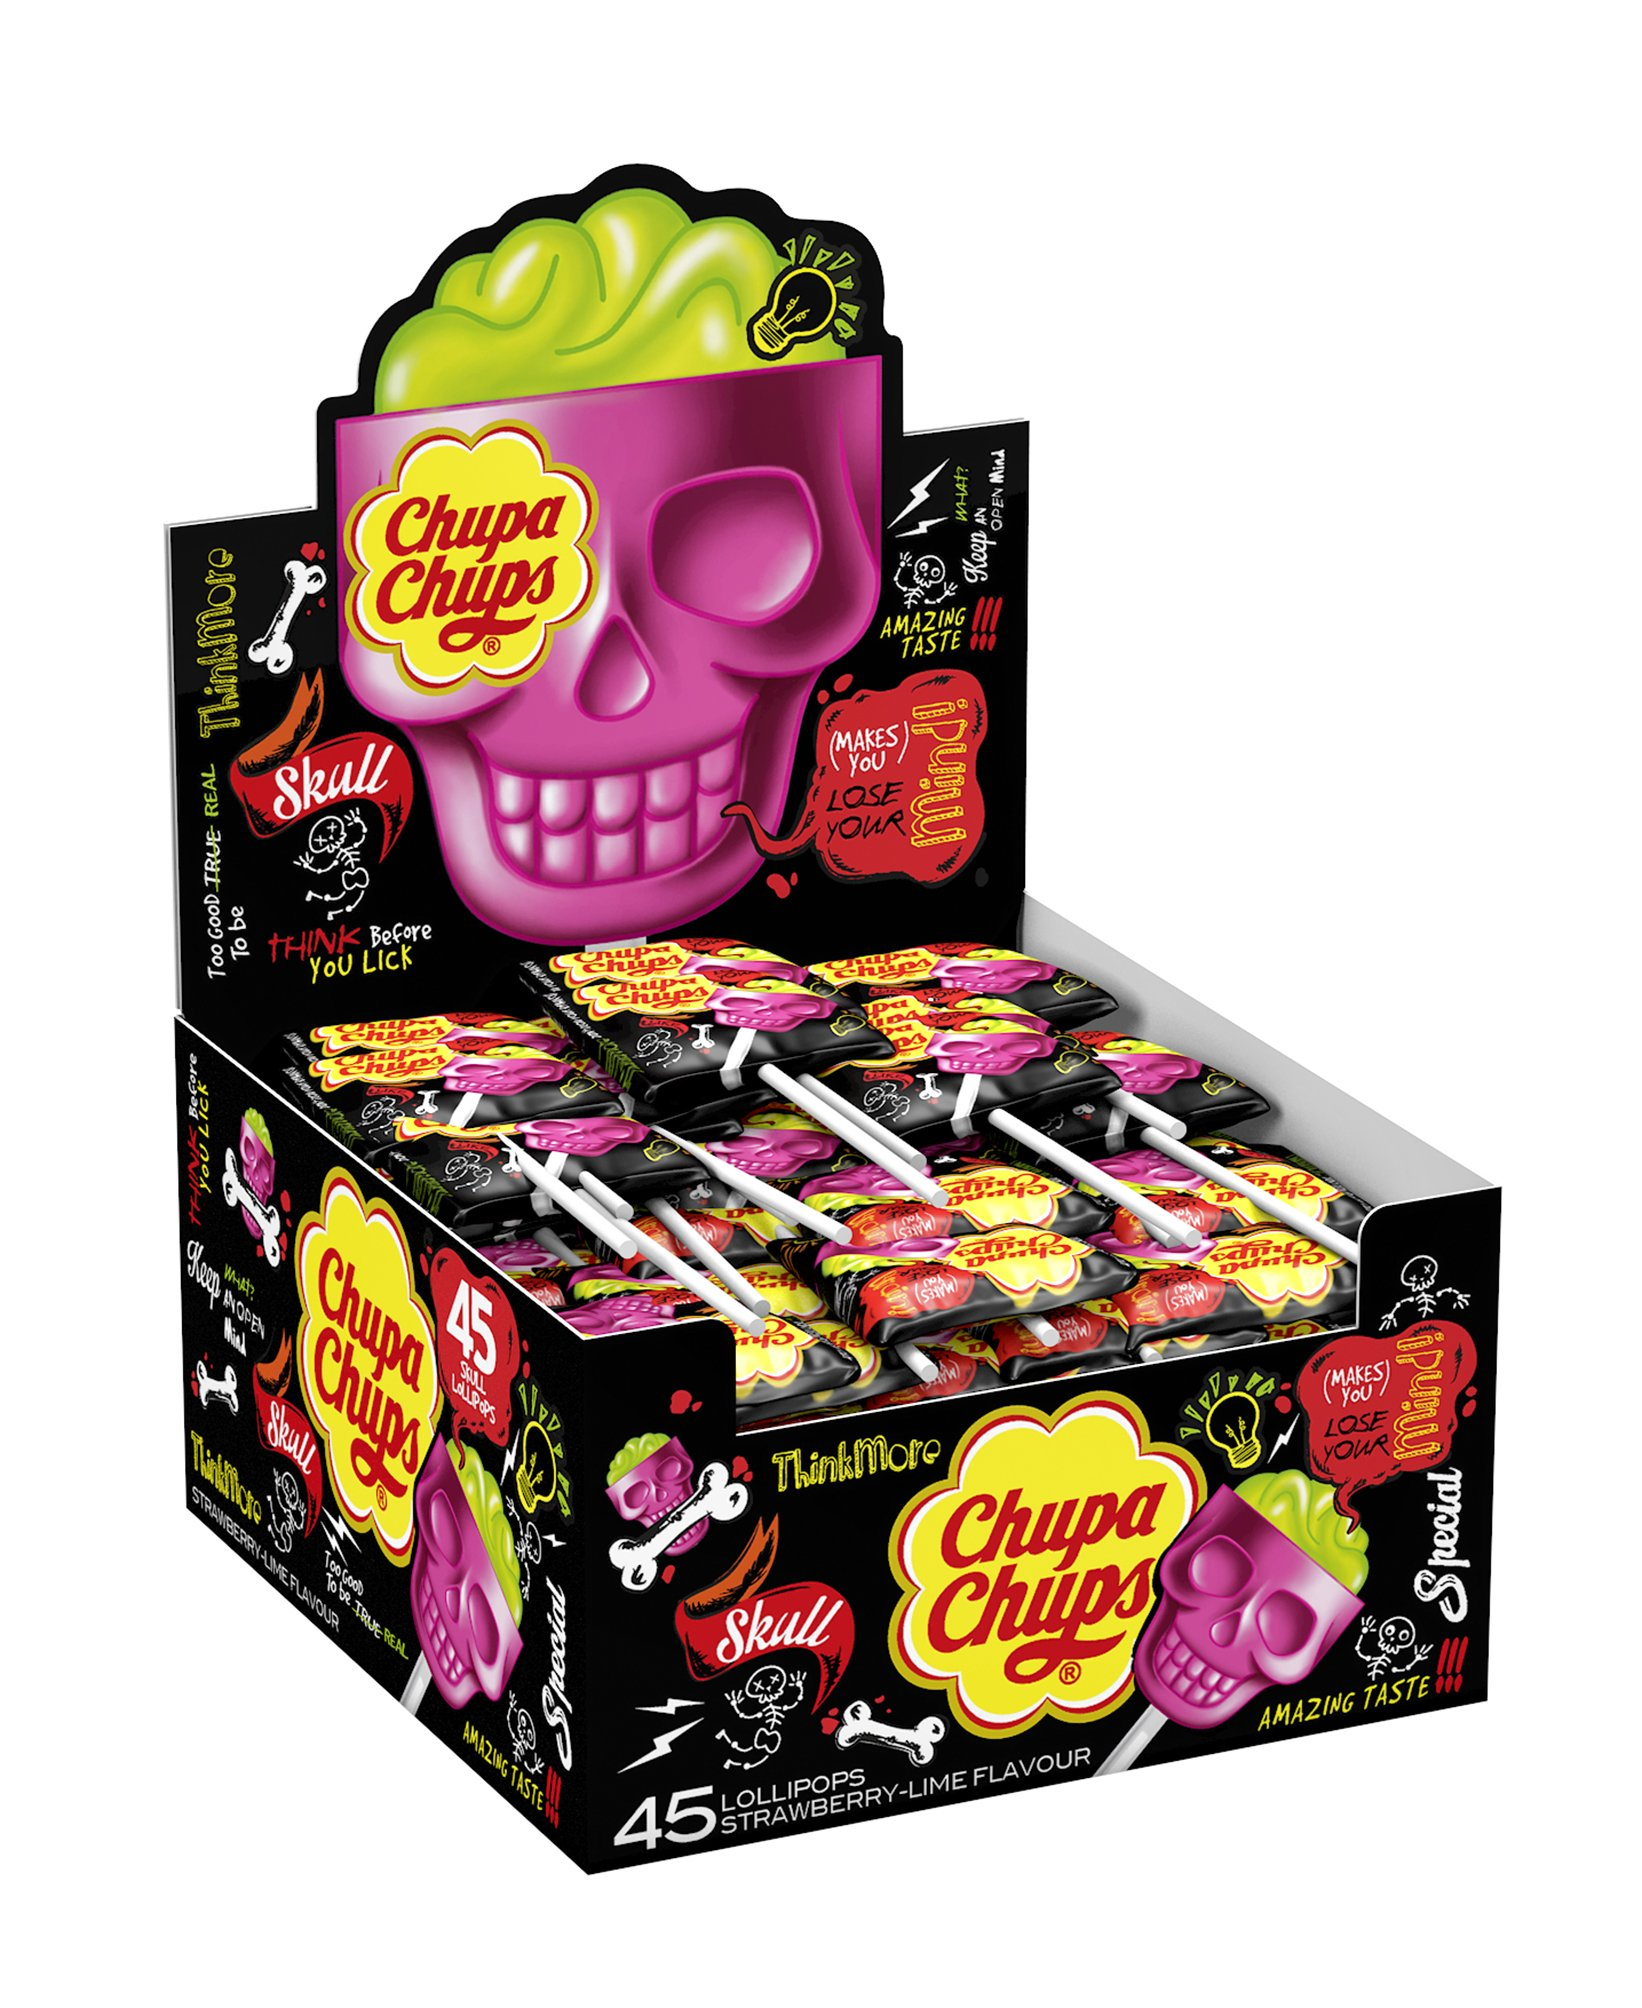 Chupa Chups Skull Lolly - Strawberry & Lime - 45 lollipops by Chupa Chups